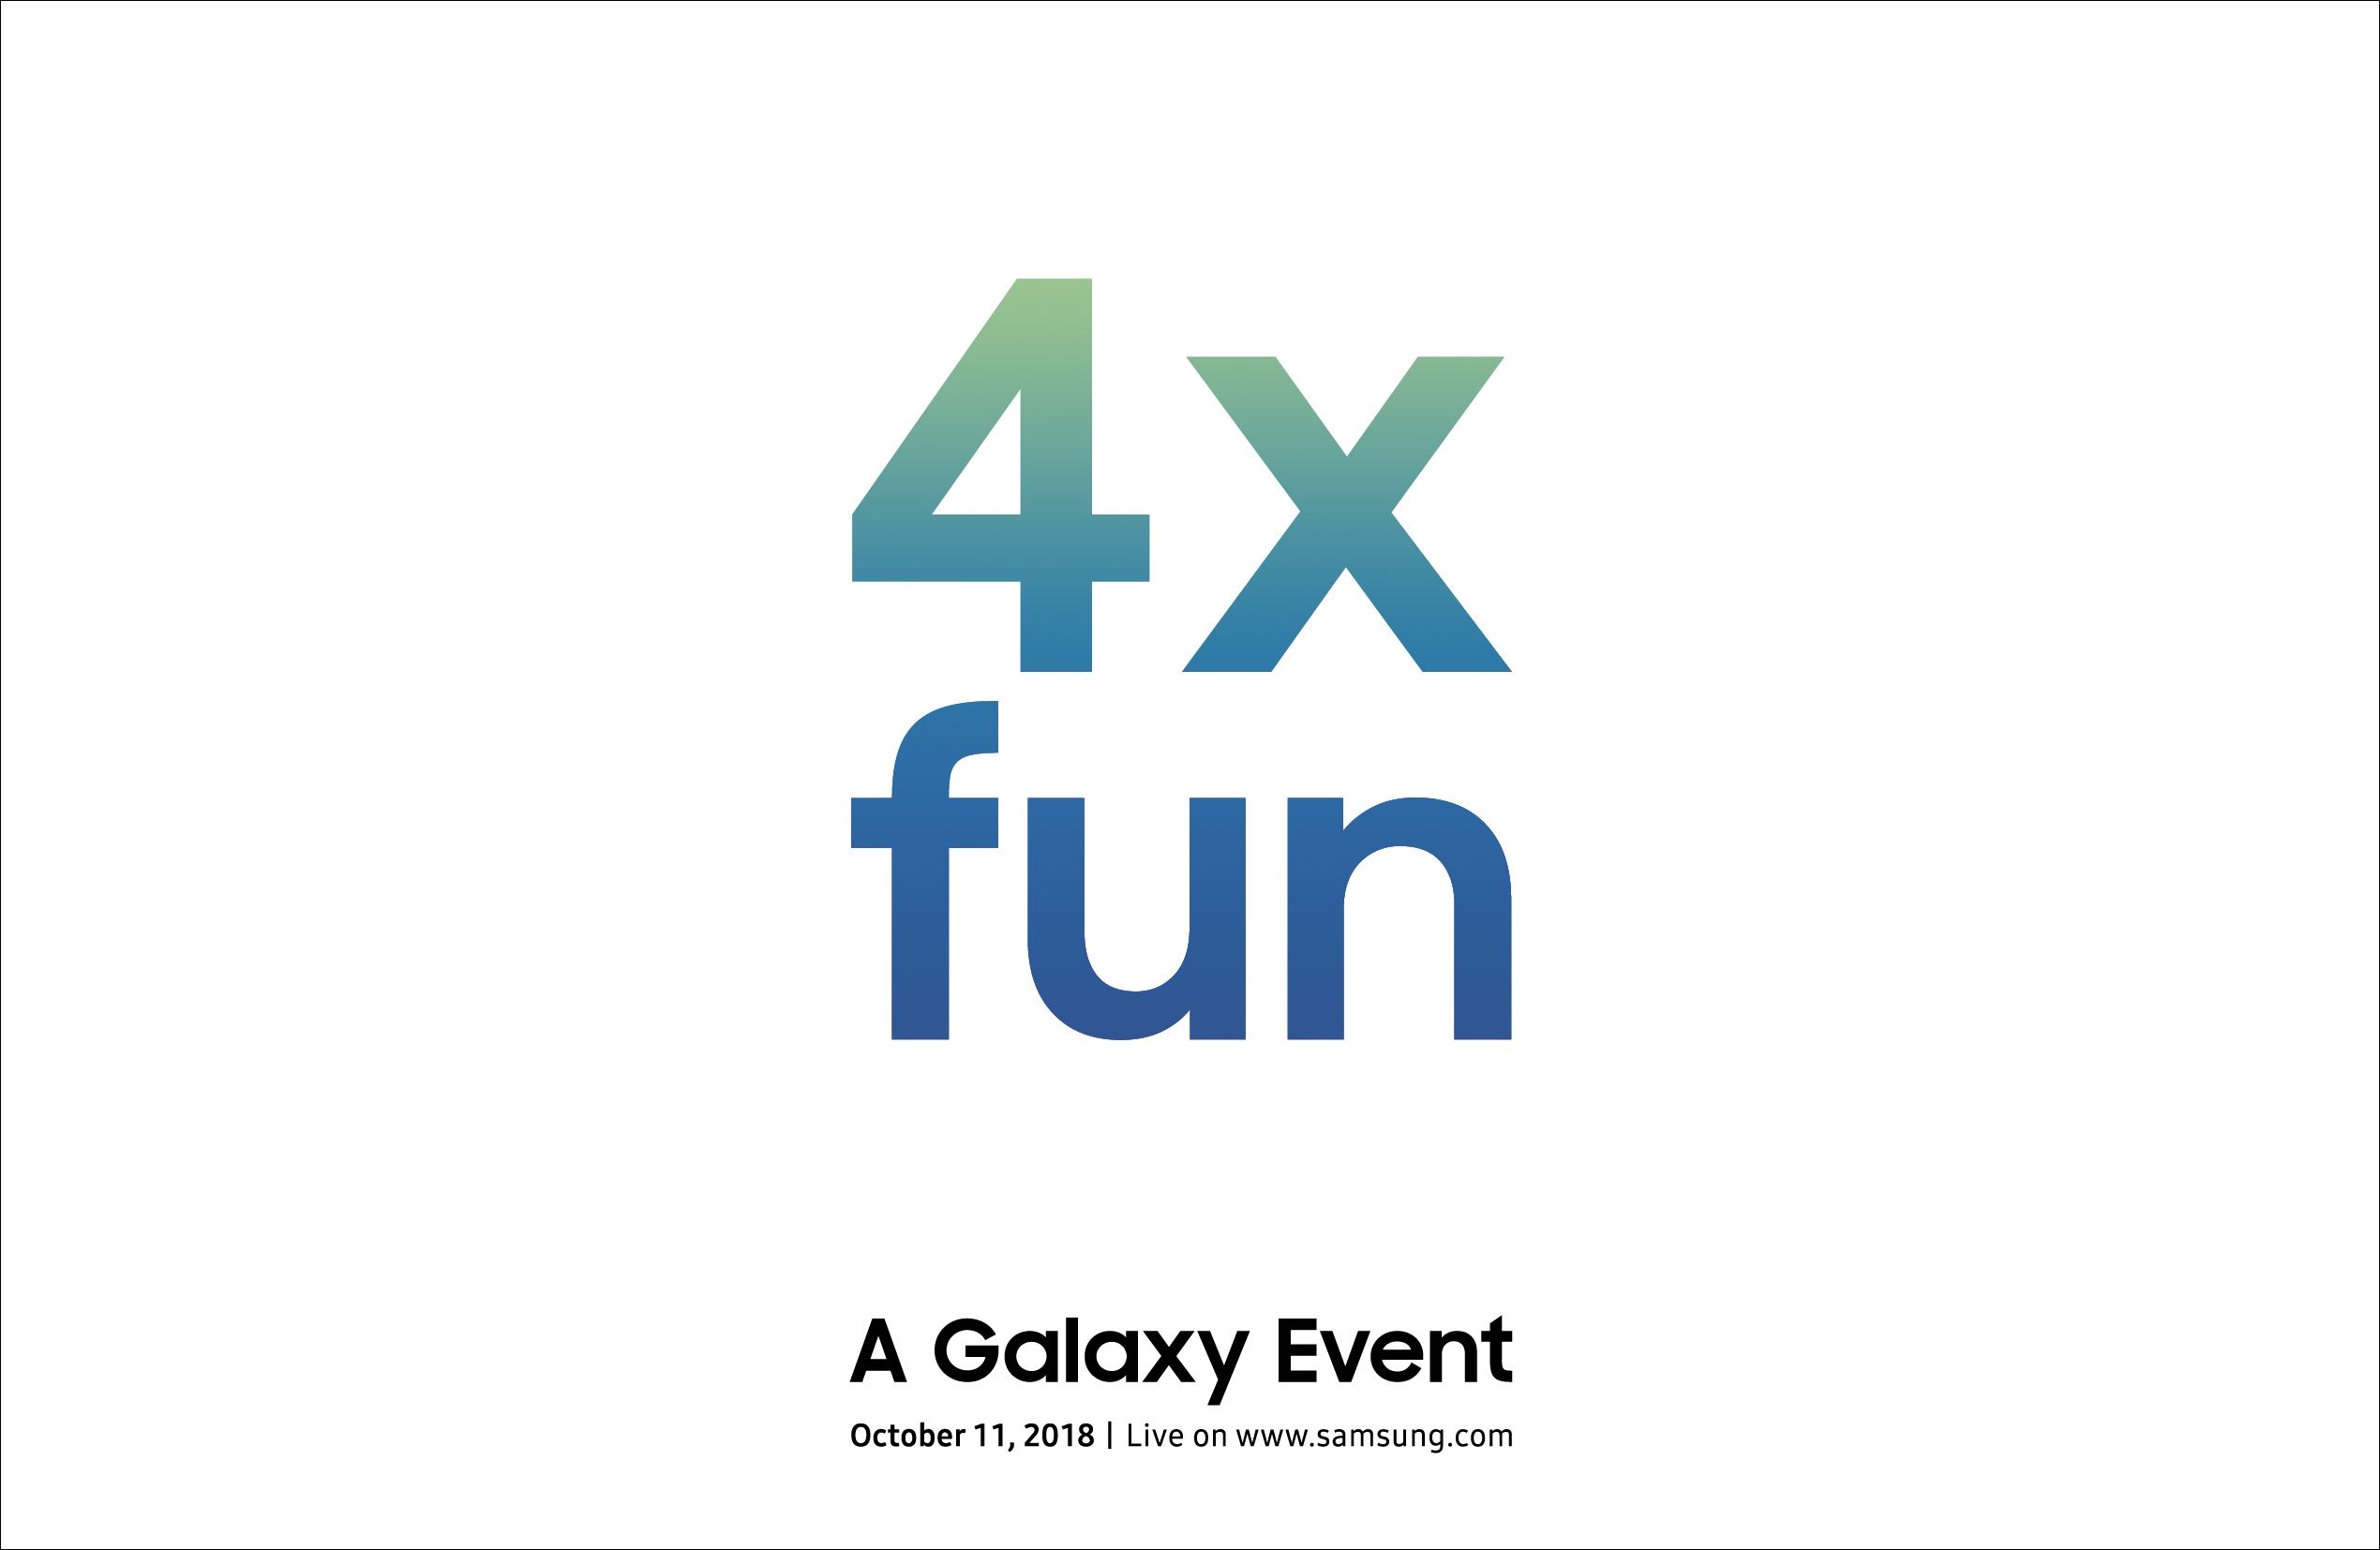 Samsung's October 11 Galaxy event will take place in Malaysia